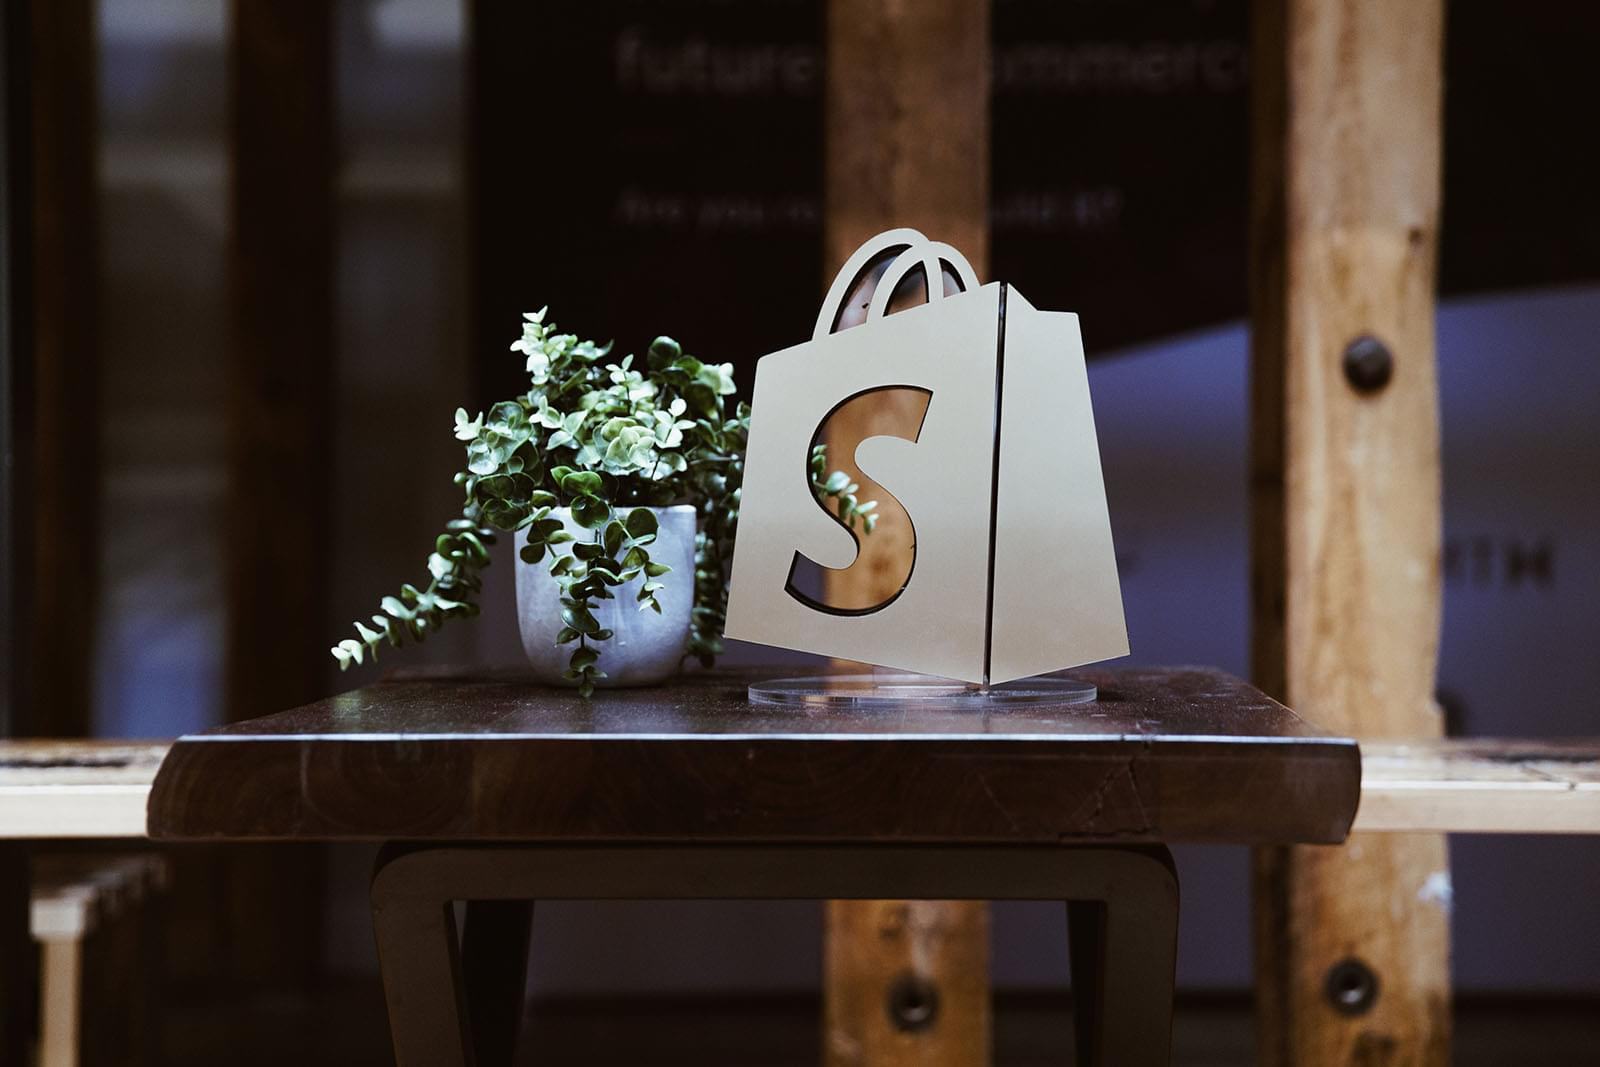 Setting Up a Shopify Store and Making It Come Alive With Design, Products and Content